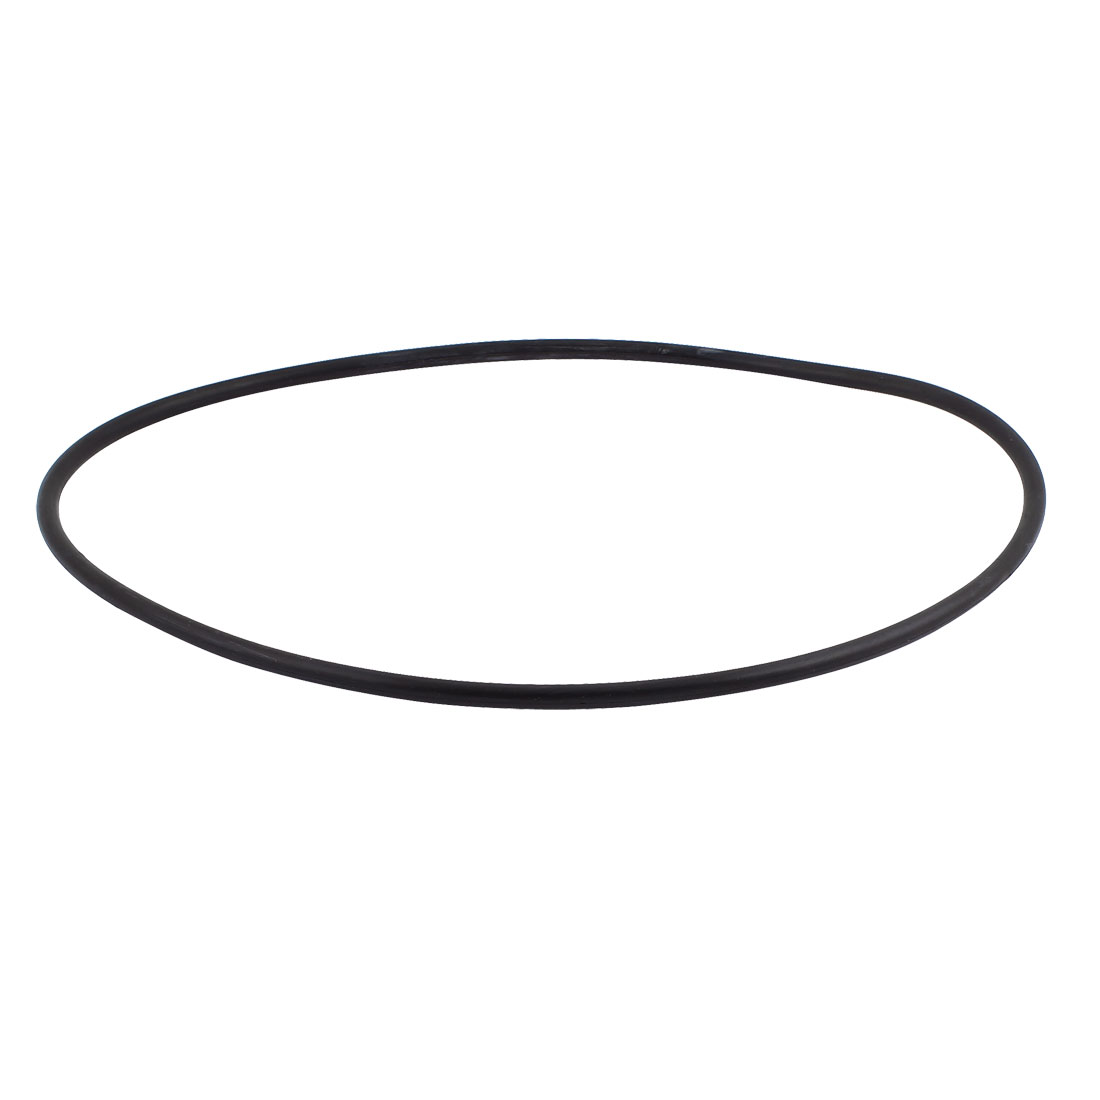 Black Universal O-Ring 300mm x 8.6mm BUNA-N Material Oil Seal Washers Grommets